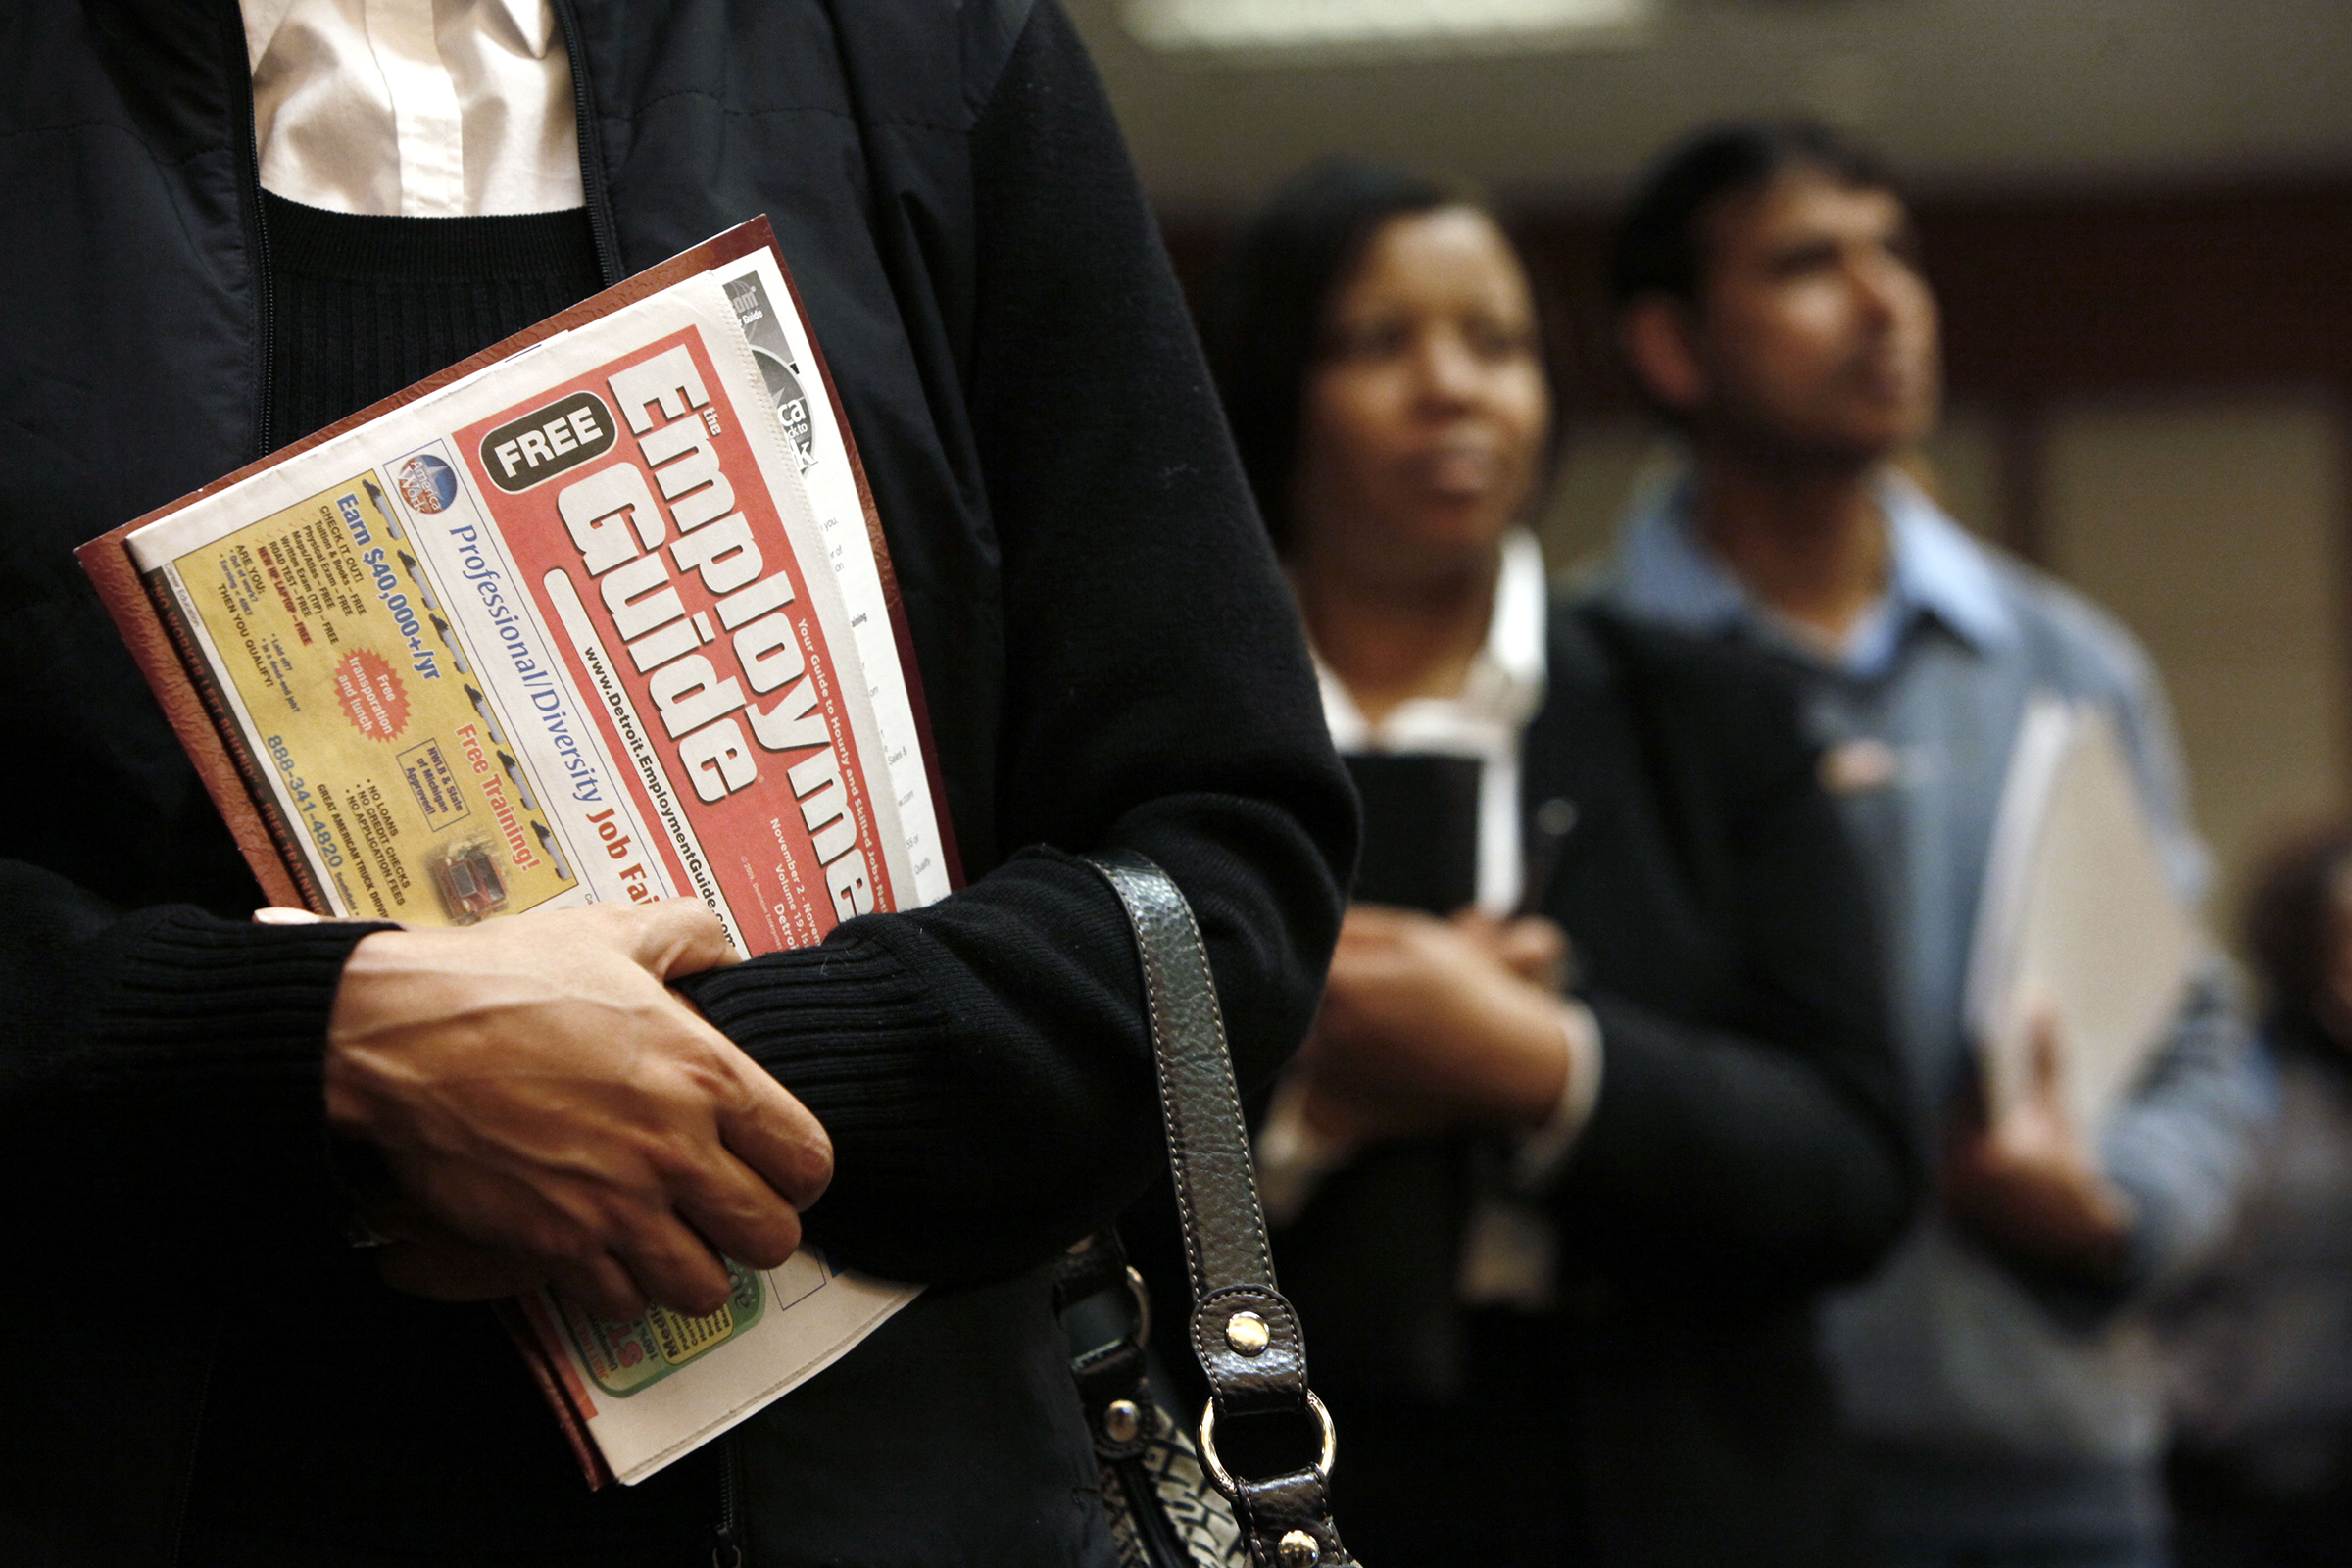 A woman holds an employment guide standing in line while attending a job fair in Livonia, Michigan, on Nov. 4, 2009.